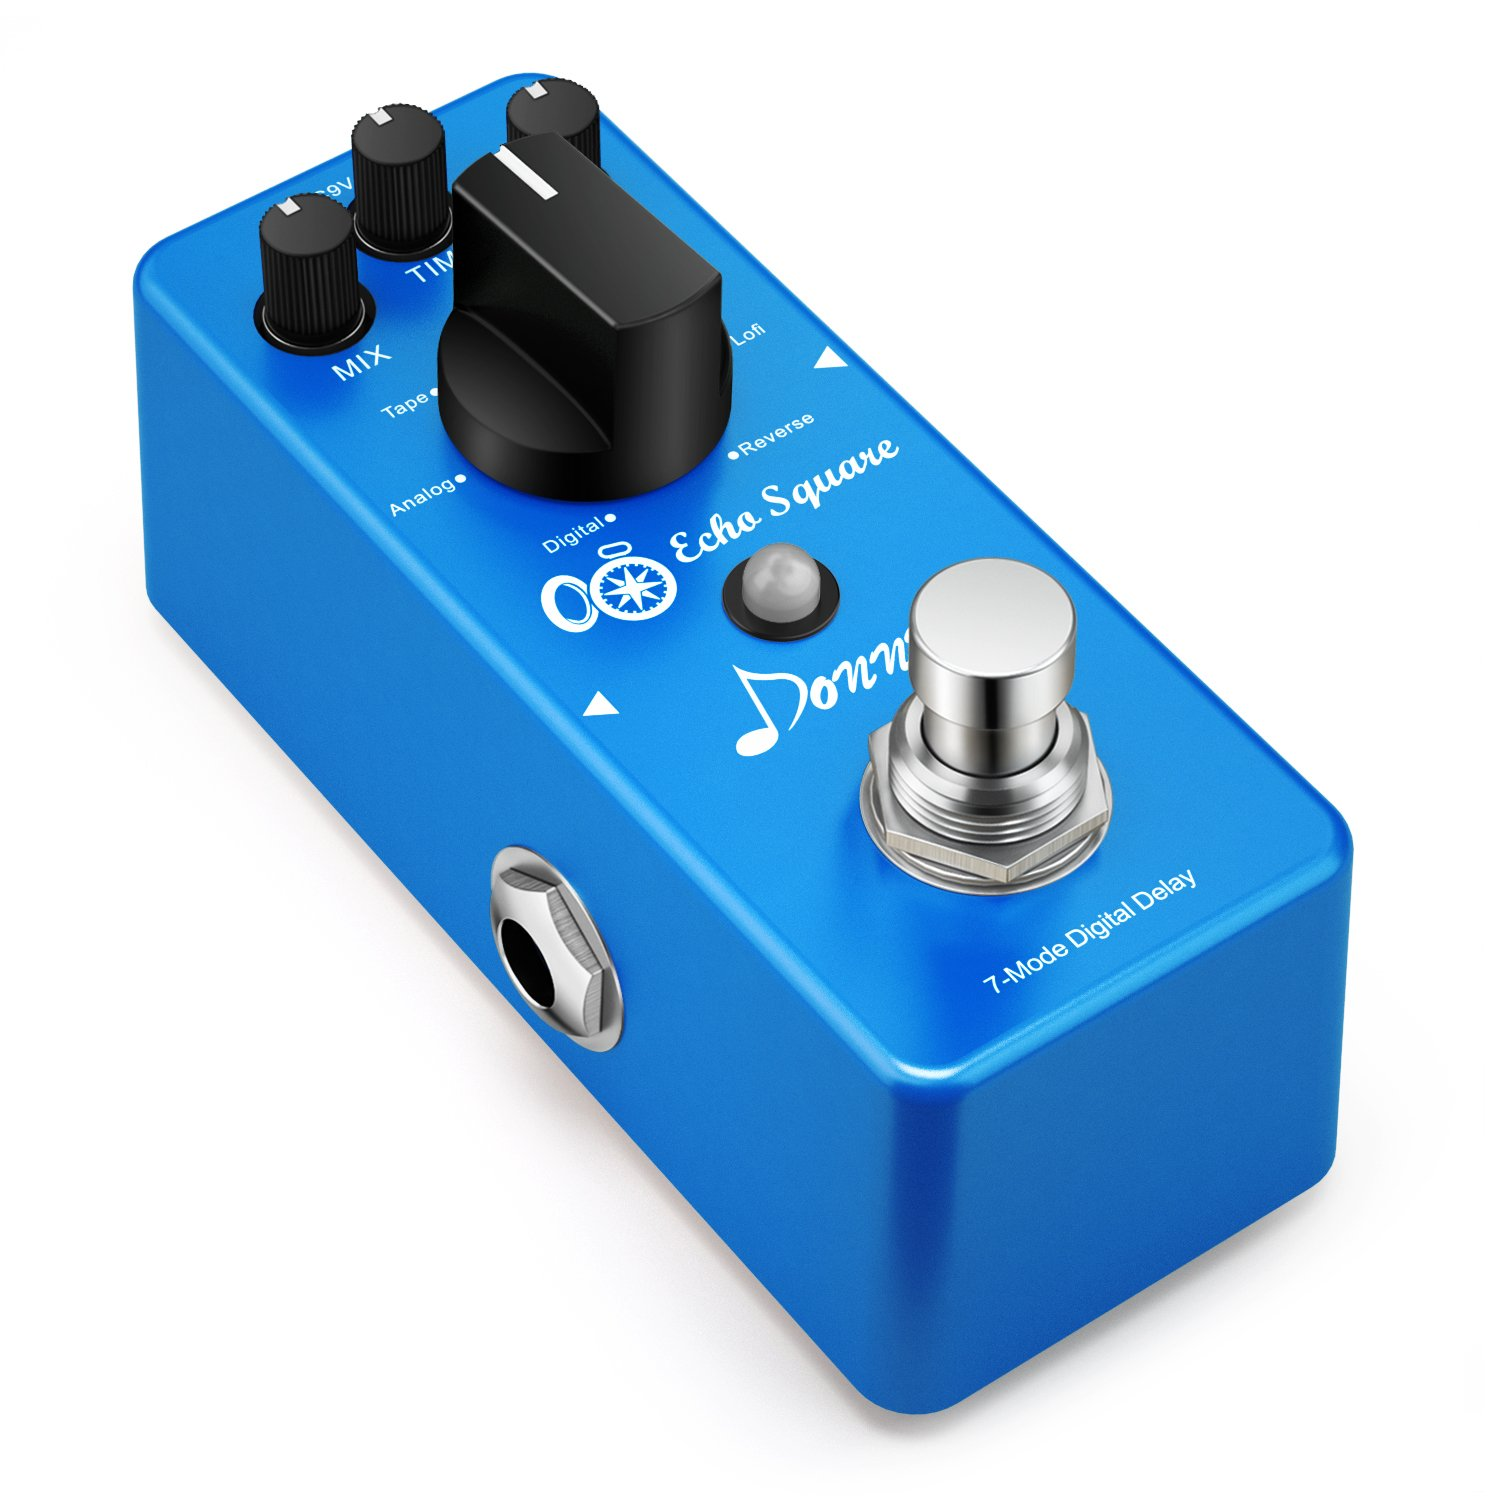 Donner Multi Digital Delay Pedal Echo Square Guitar Effect Pedal 7 Modes by Donner